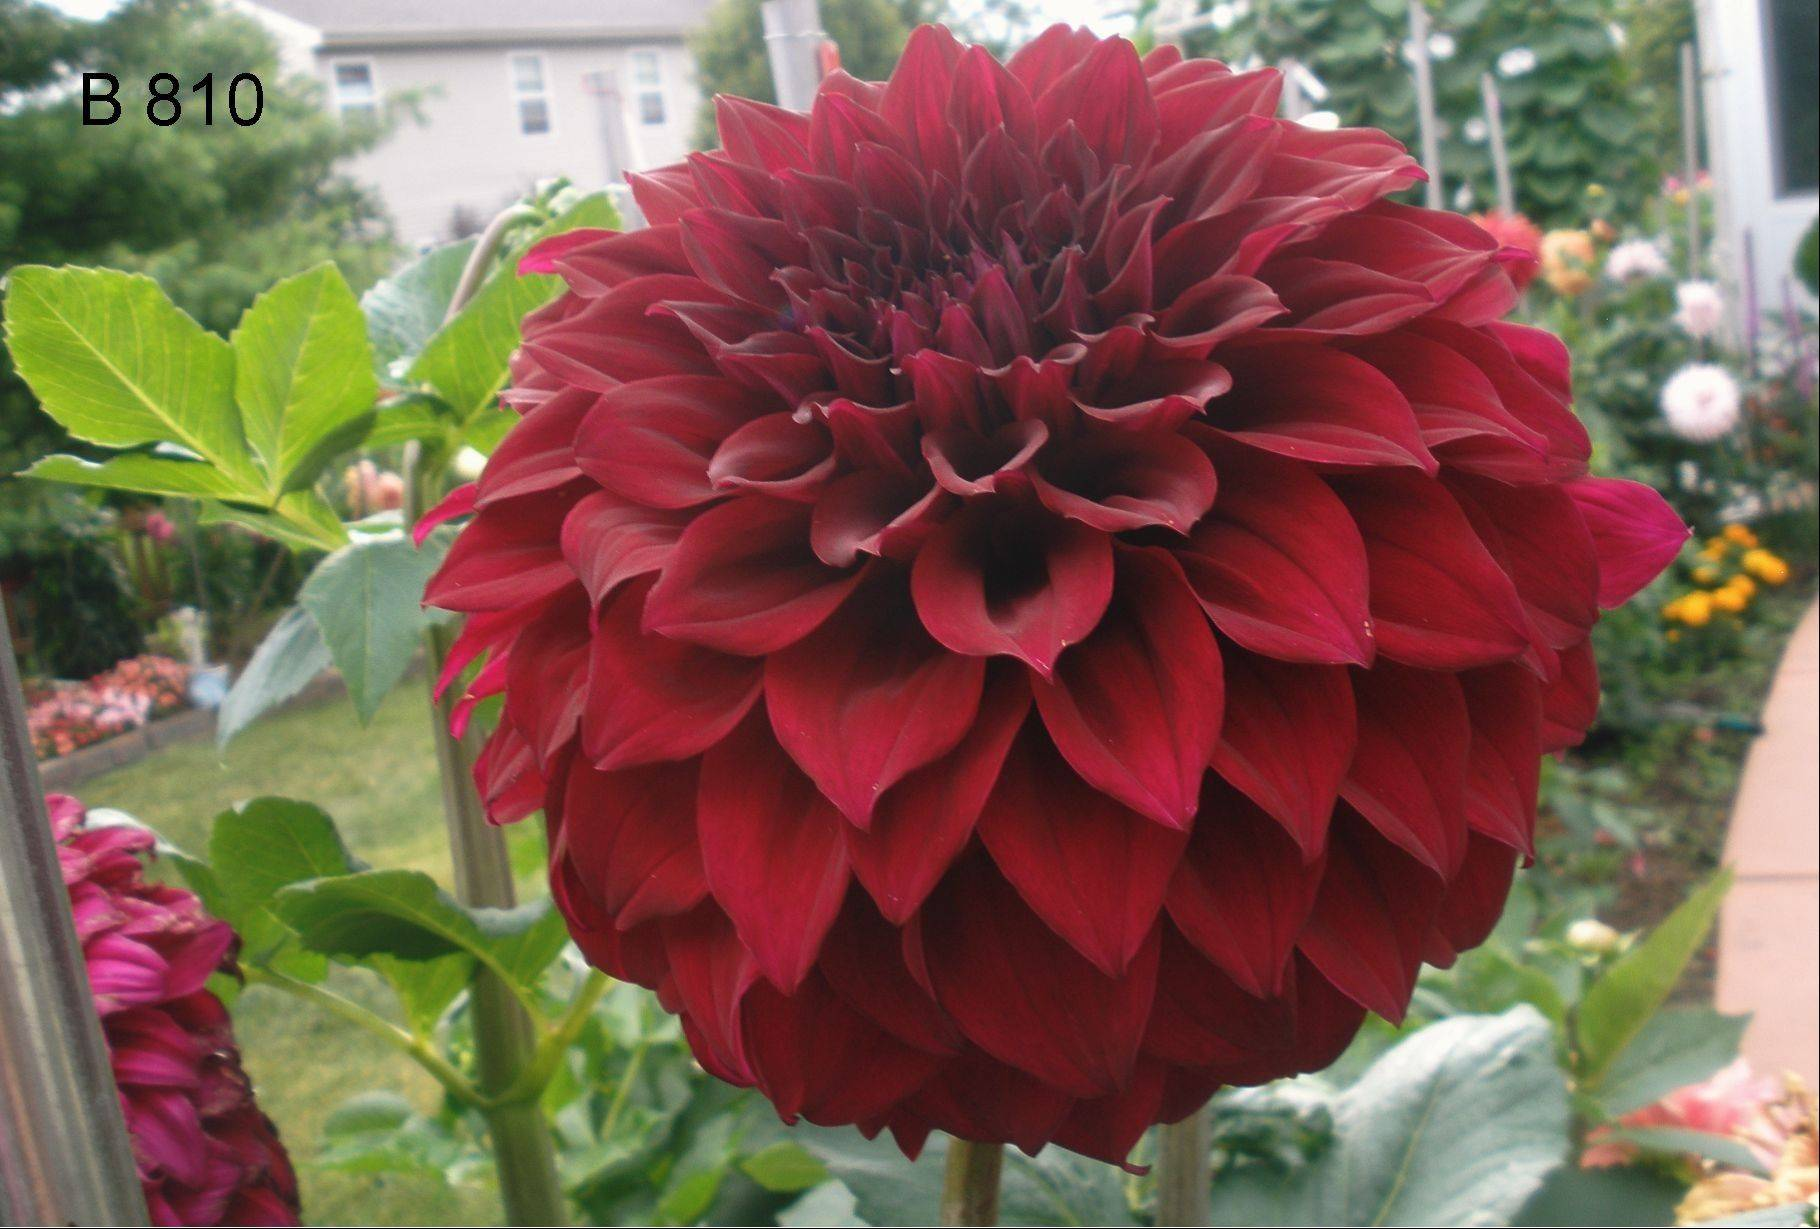 Spartacus is often the starting point for Steve Meggos' dahlias.